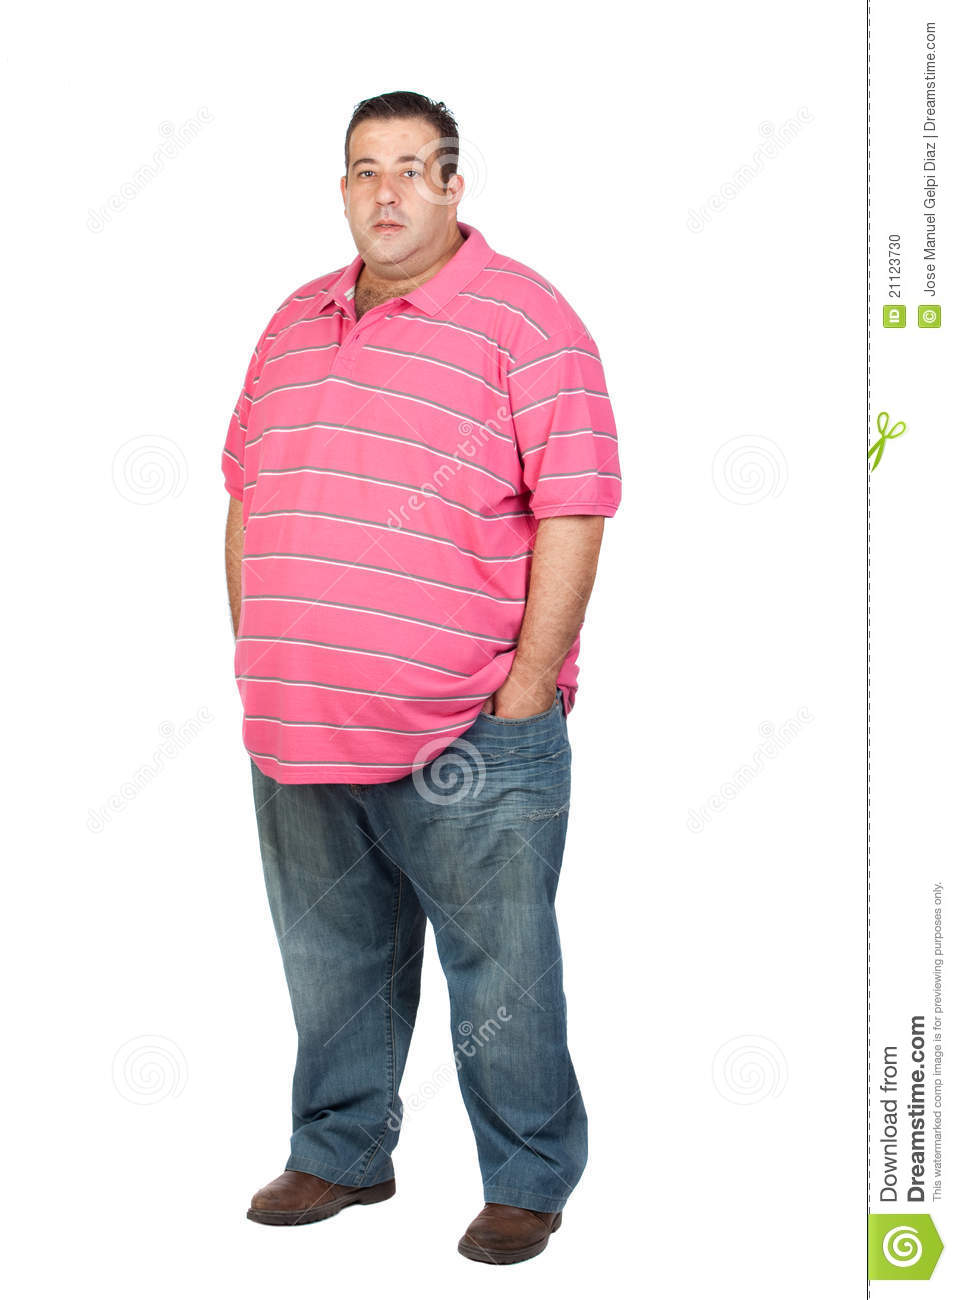 More similar stock images of ` Fat man with pink shirt `